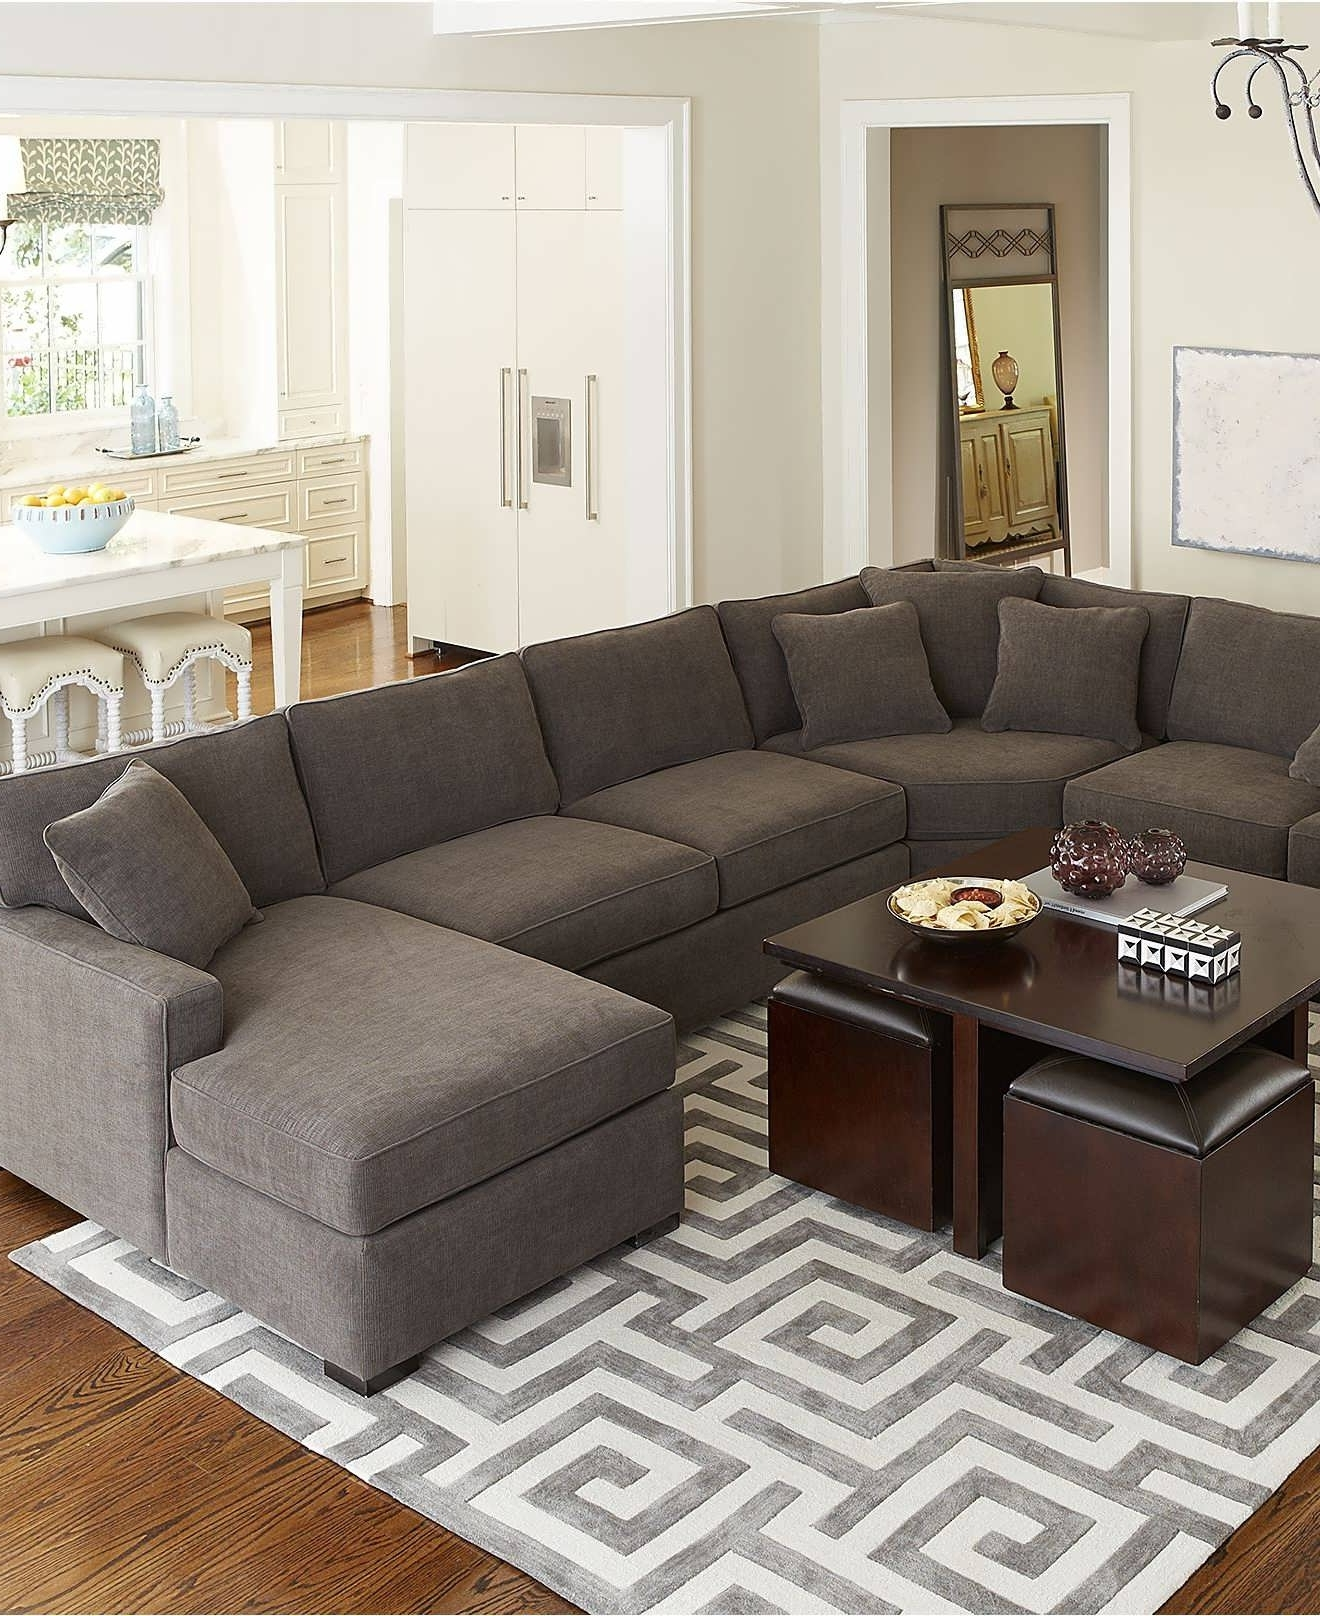 Preferred Philippines Sectional Sofas Pertaining To Sofa Living Room Ikea Ektorp Tapestry Furniture Sectional Layout (View 17 of 20)